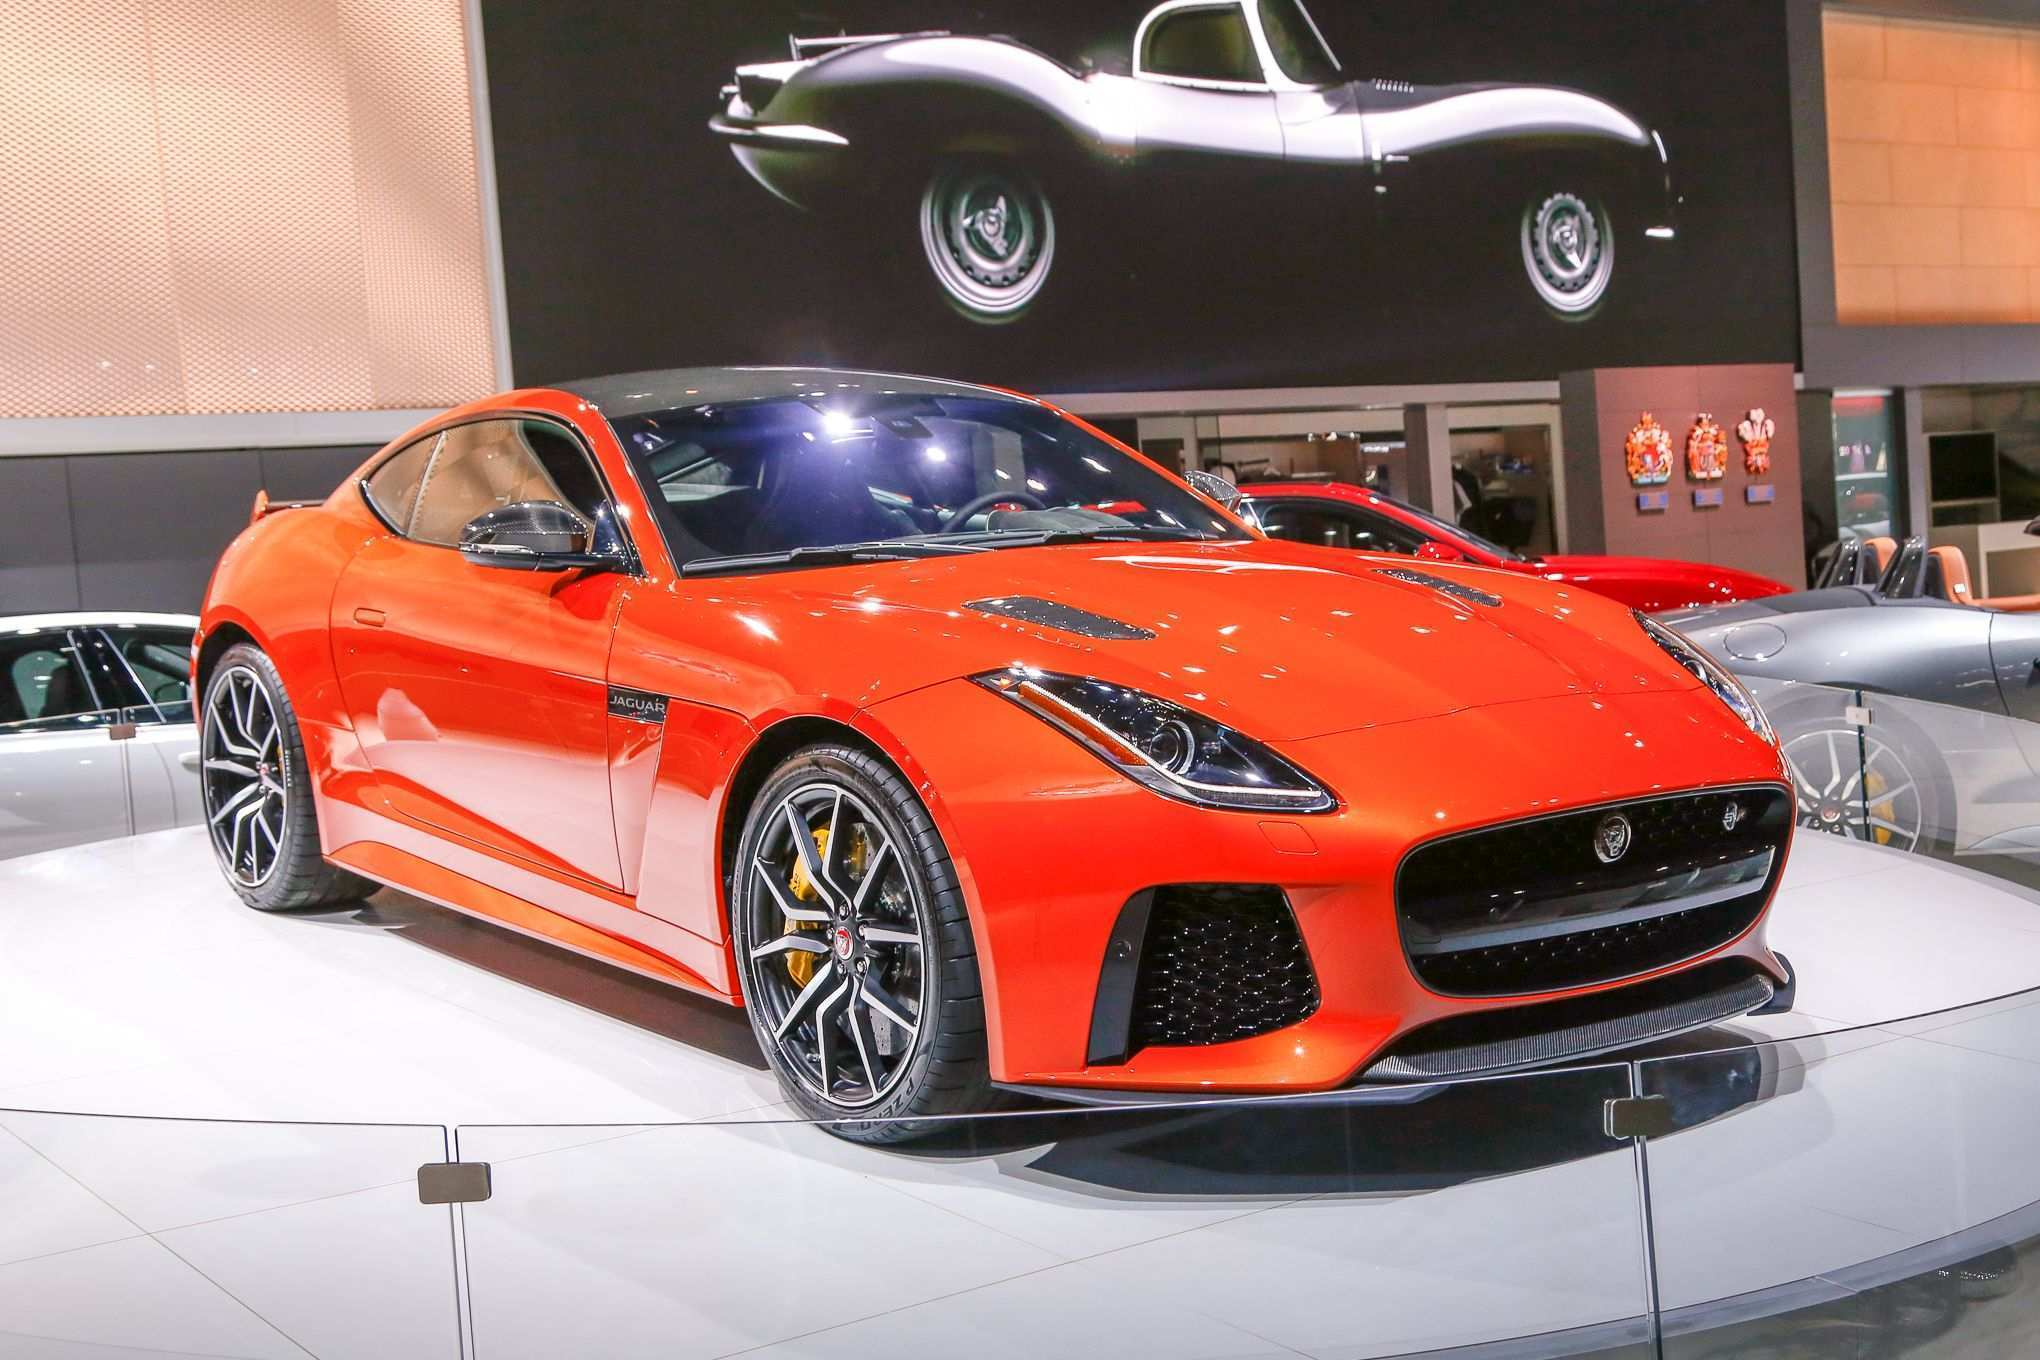 87 All New 2020 Jaguar F Type Svr Spesification for 2020 Jaguar F Type Svr